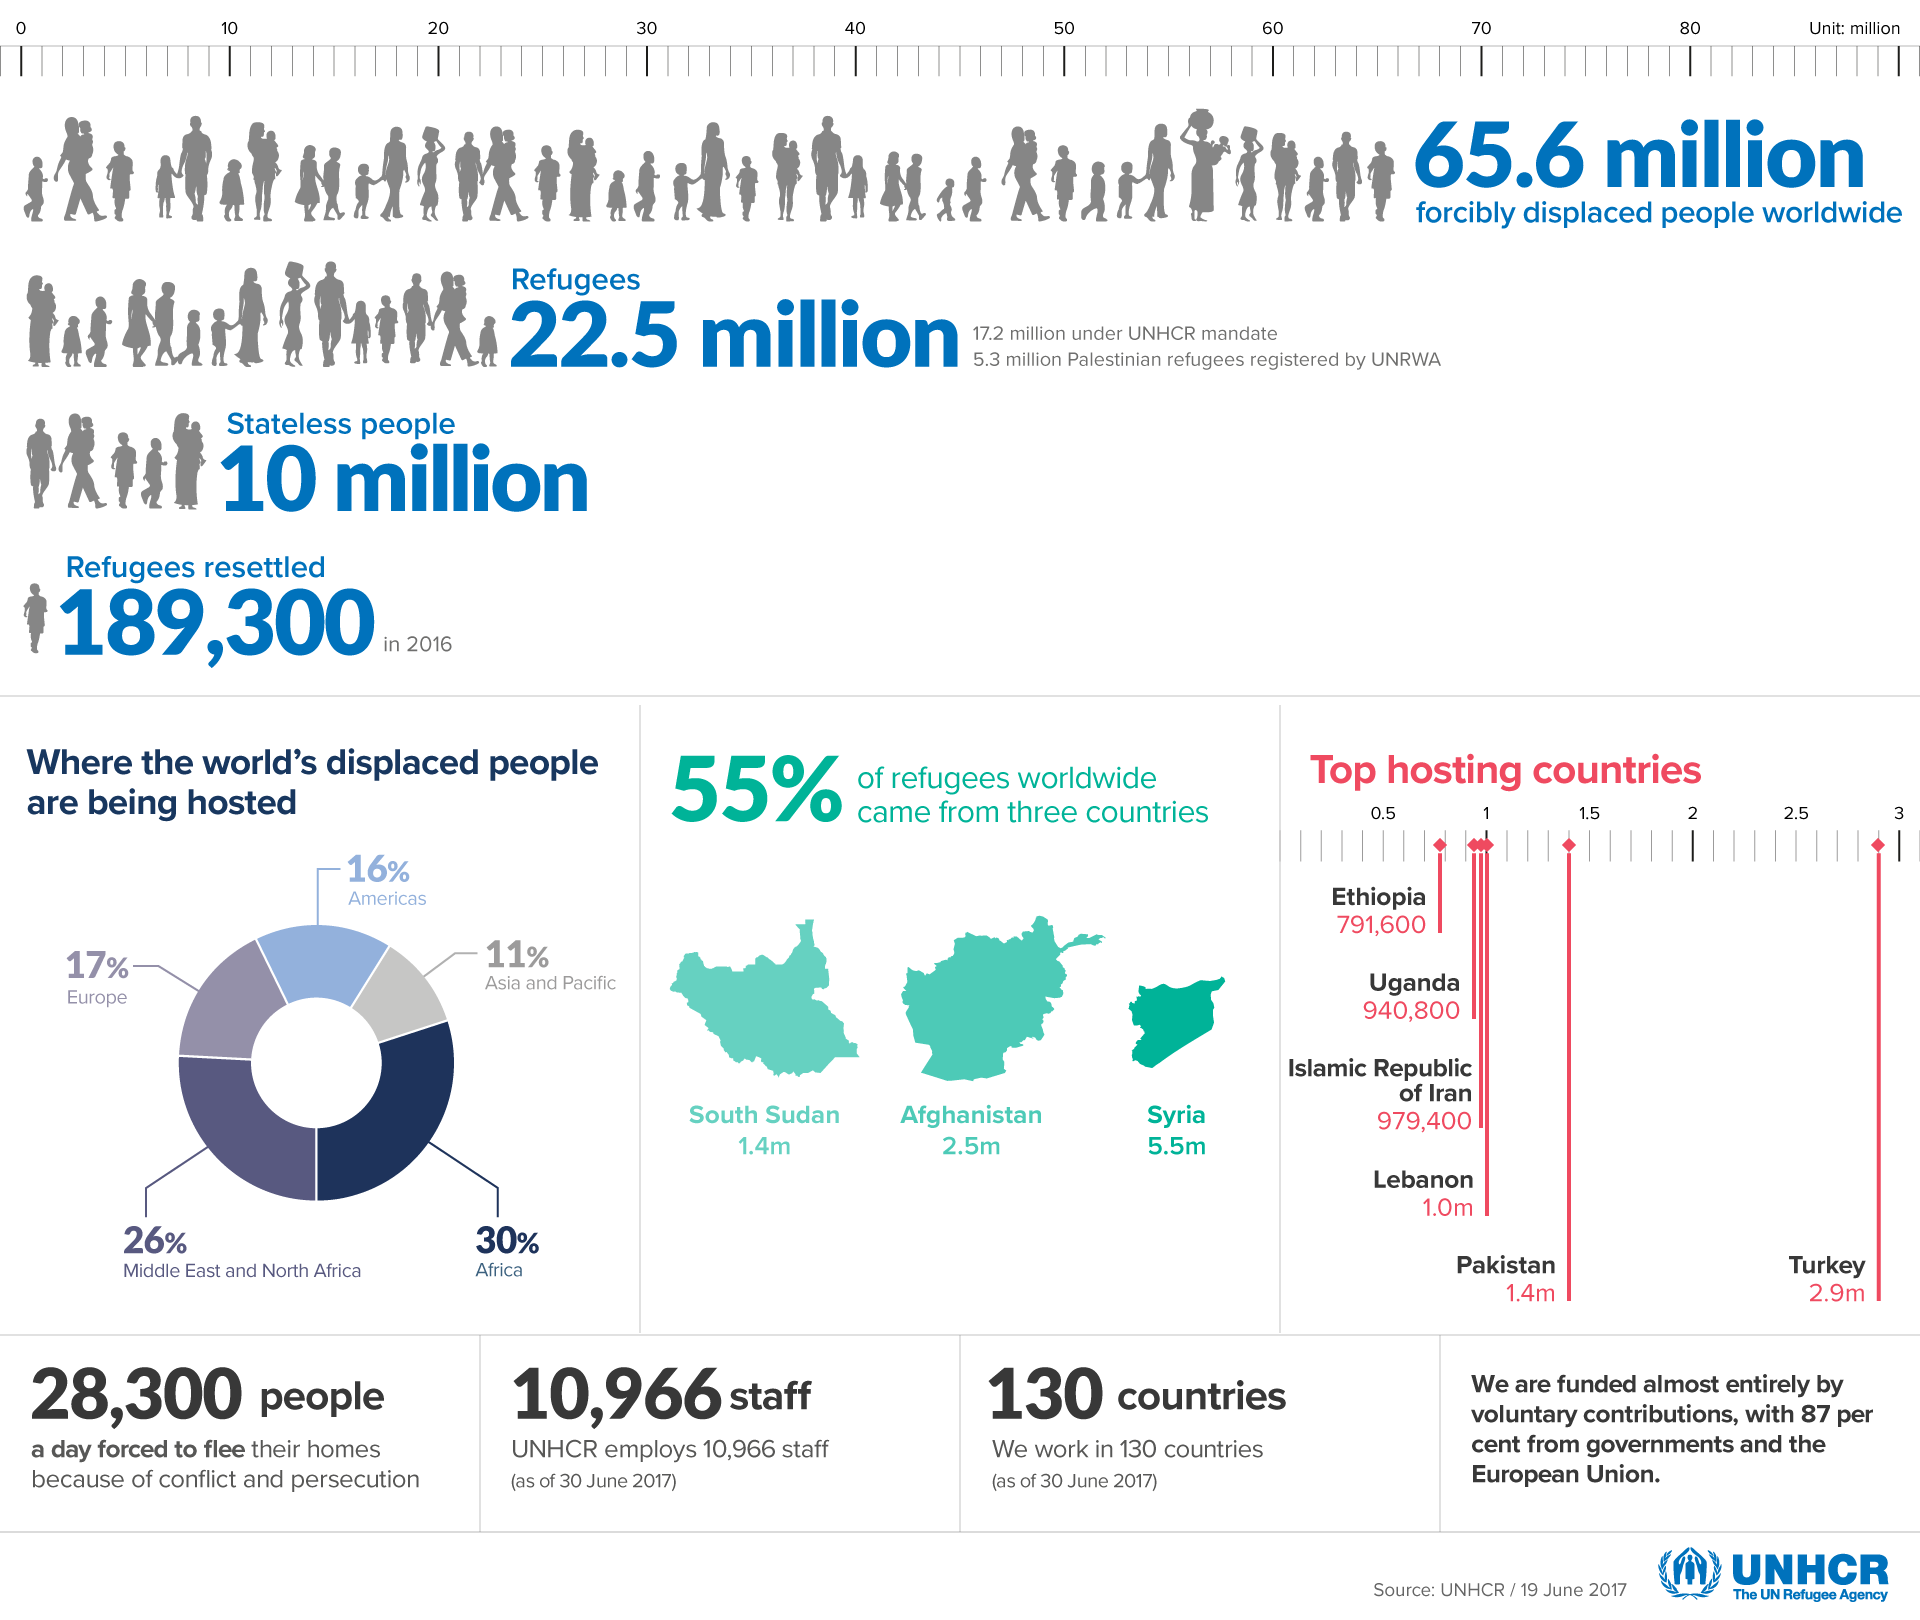 Information used from UNHCR:http://www.unhcr.org/pages/49c3646c11.html